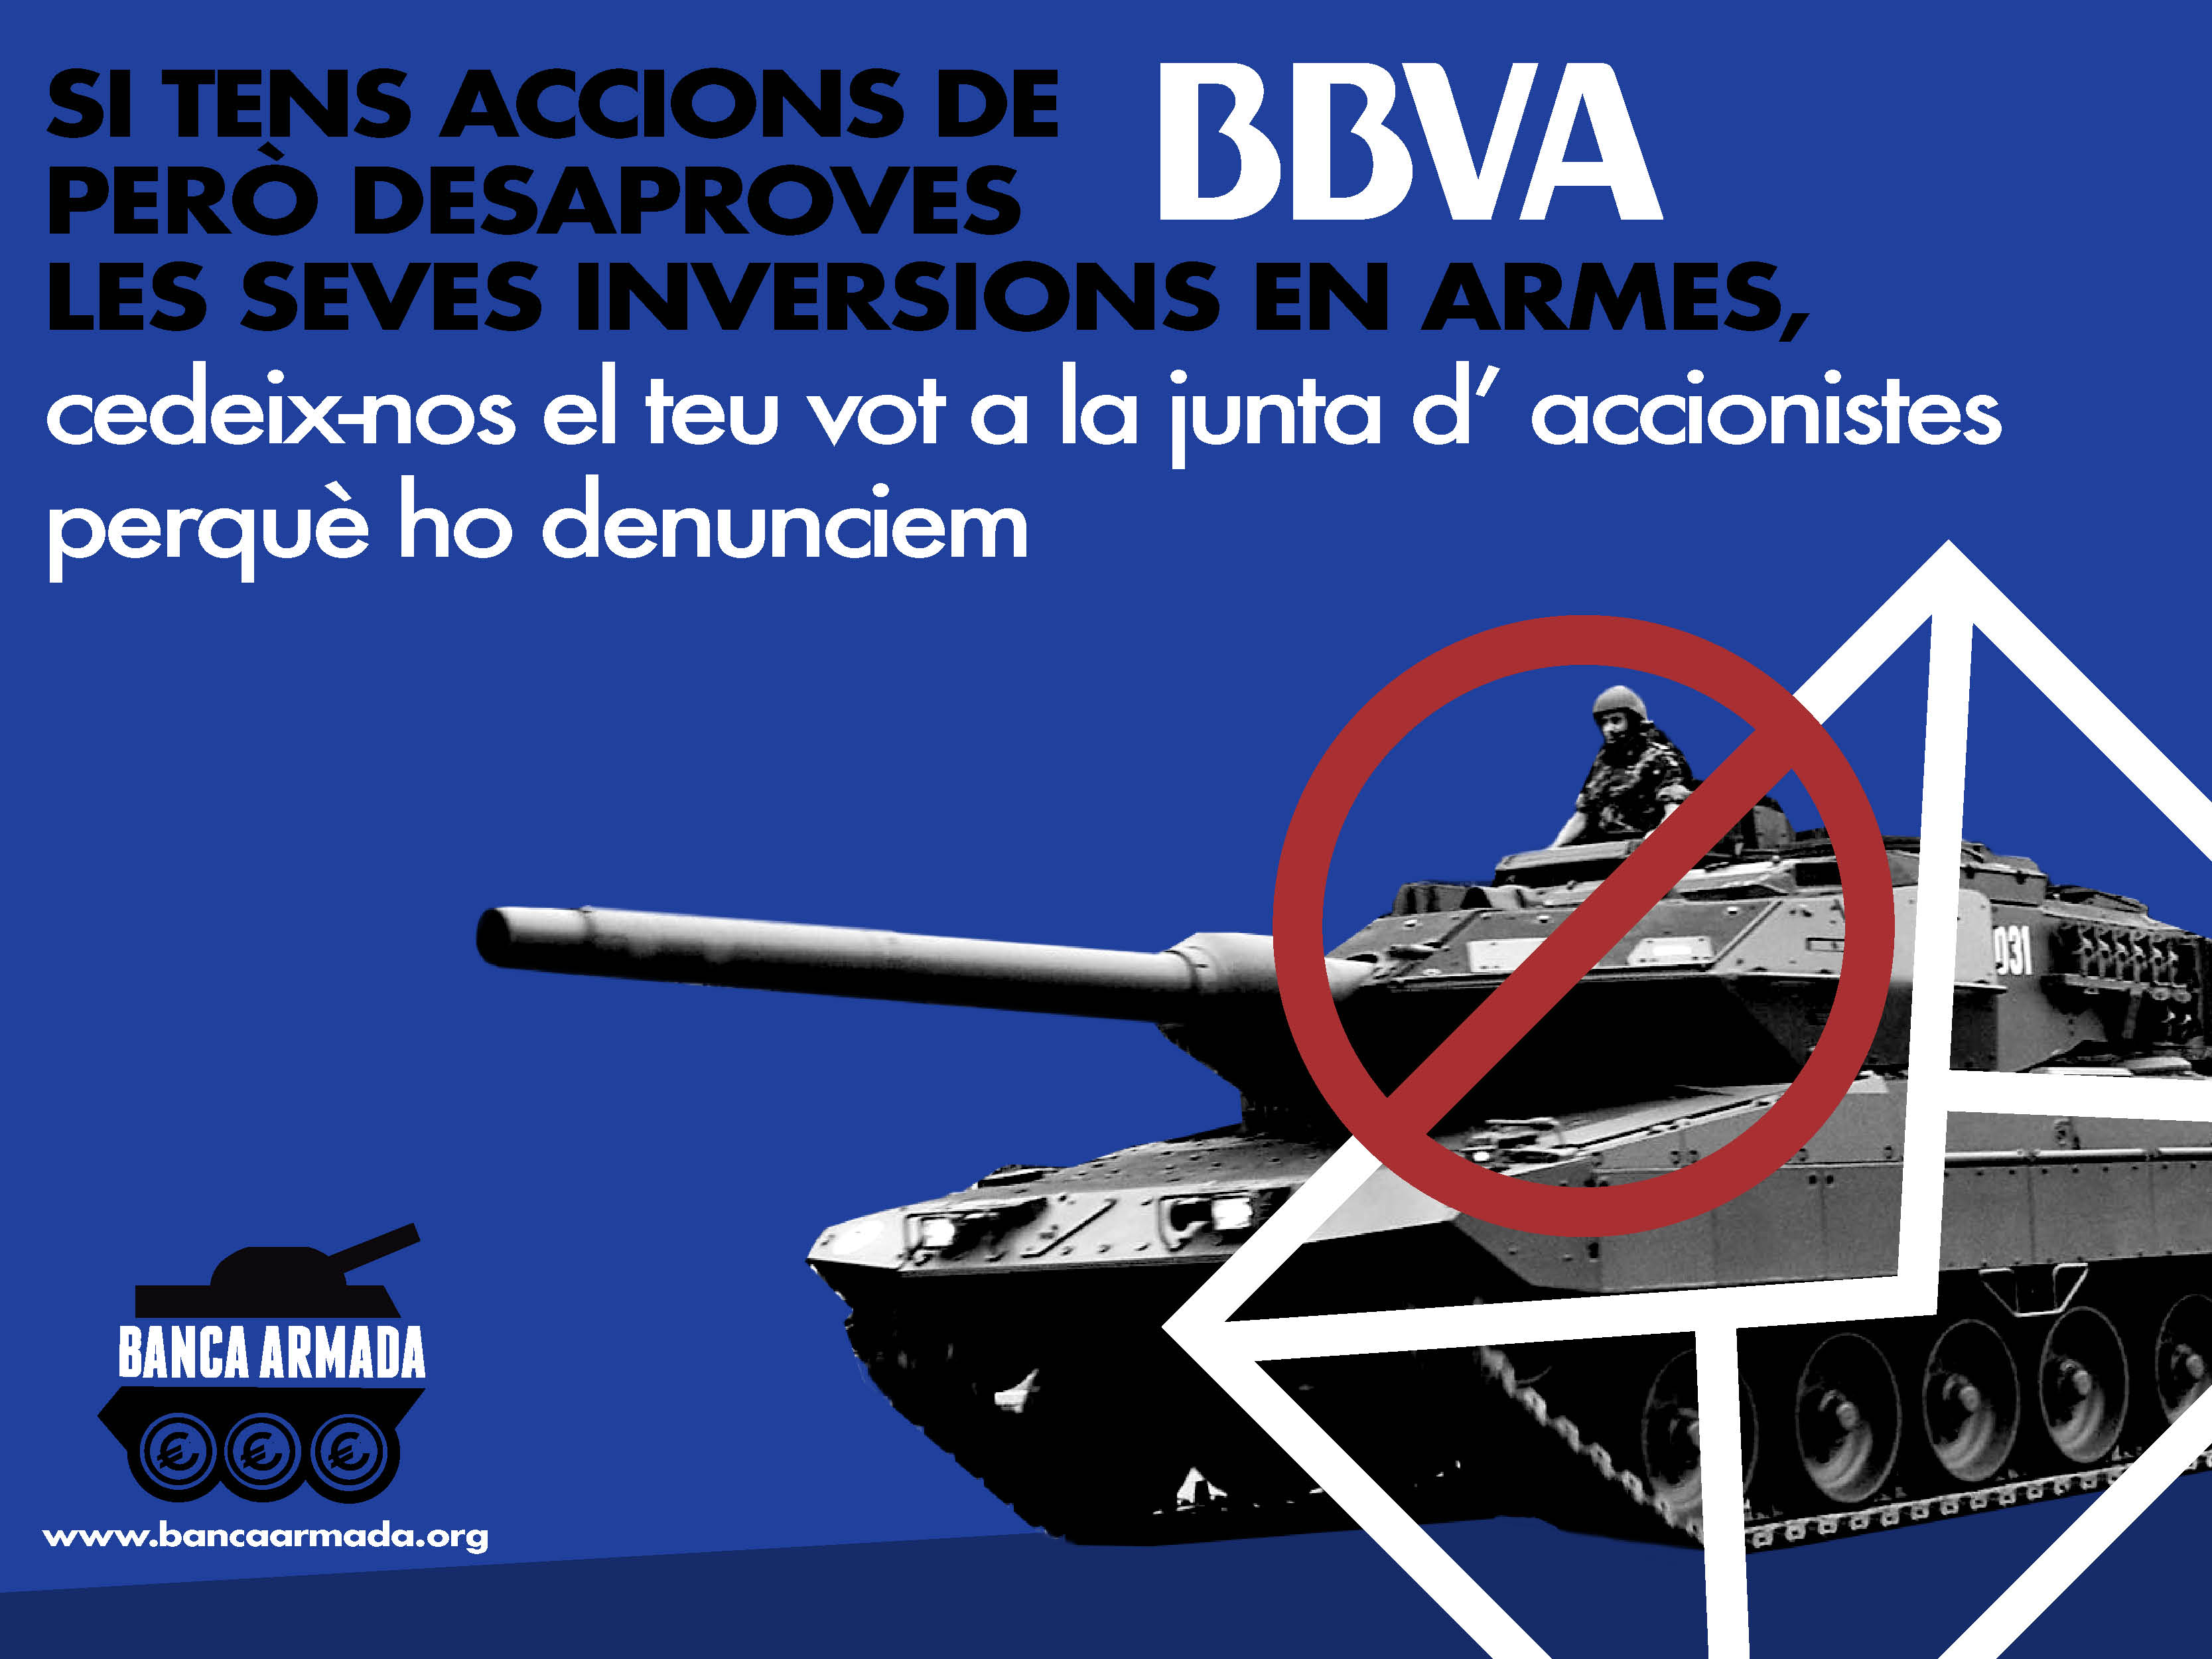 Petition for action to denounce investments in weapons at the 2018 share holders meeting of BBVA